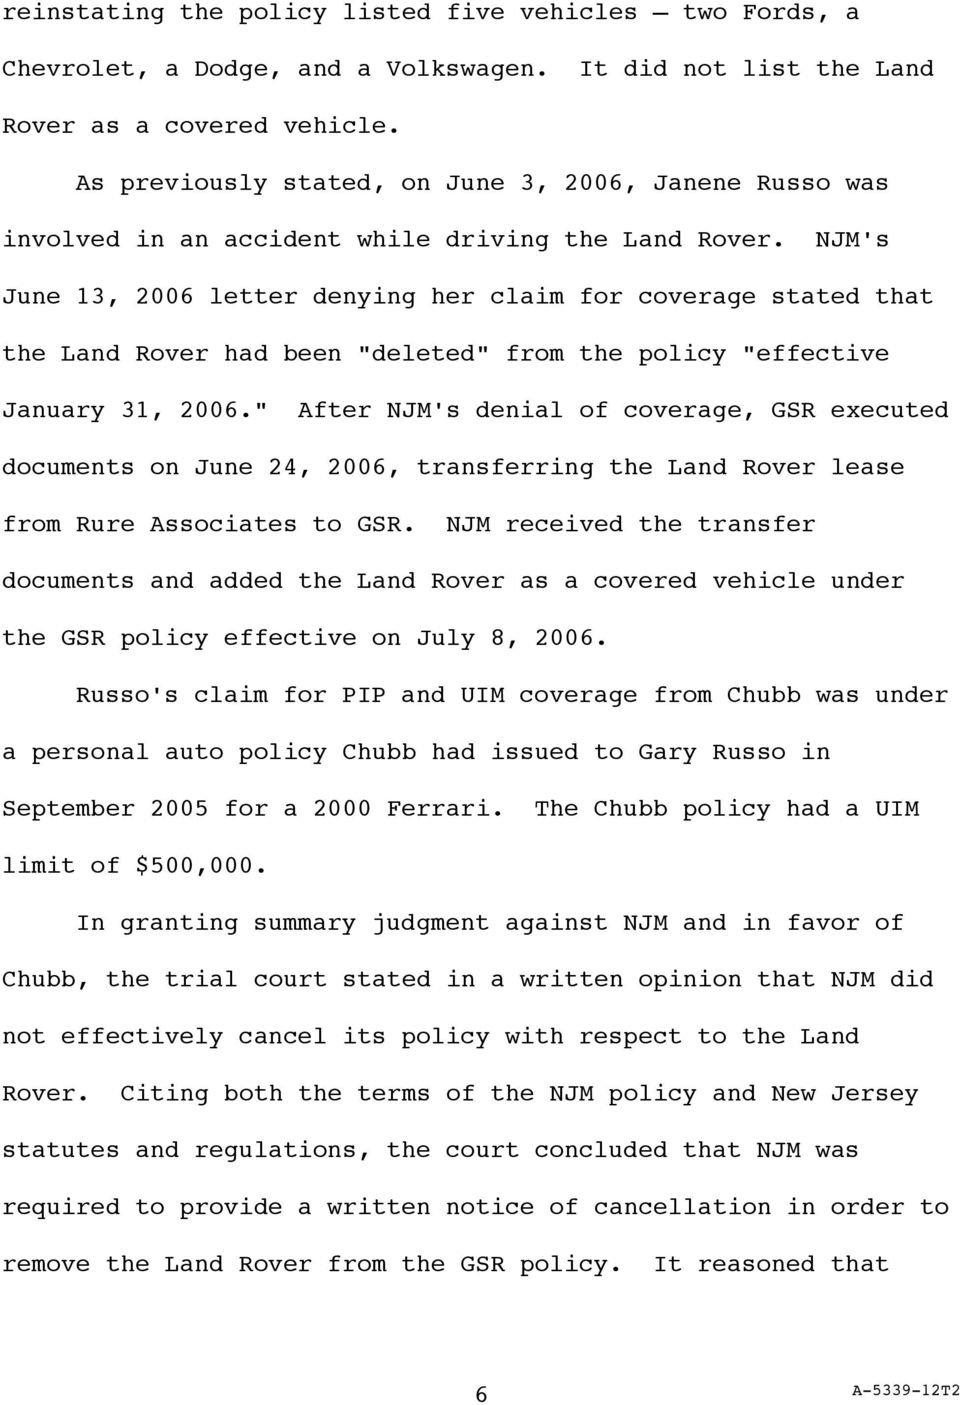 "NJM's June 13, 2006 letter denying her claim for coverage stated that the Land Rover had been ""deleted"" from the policy ""effective January 31, 2006."